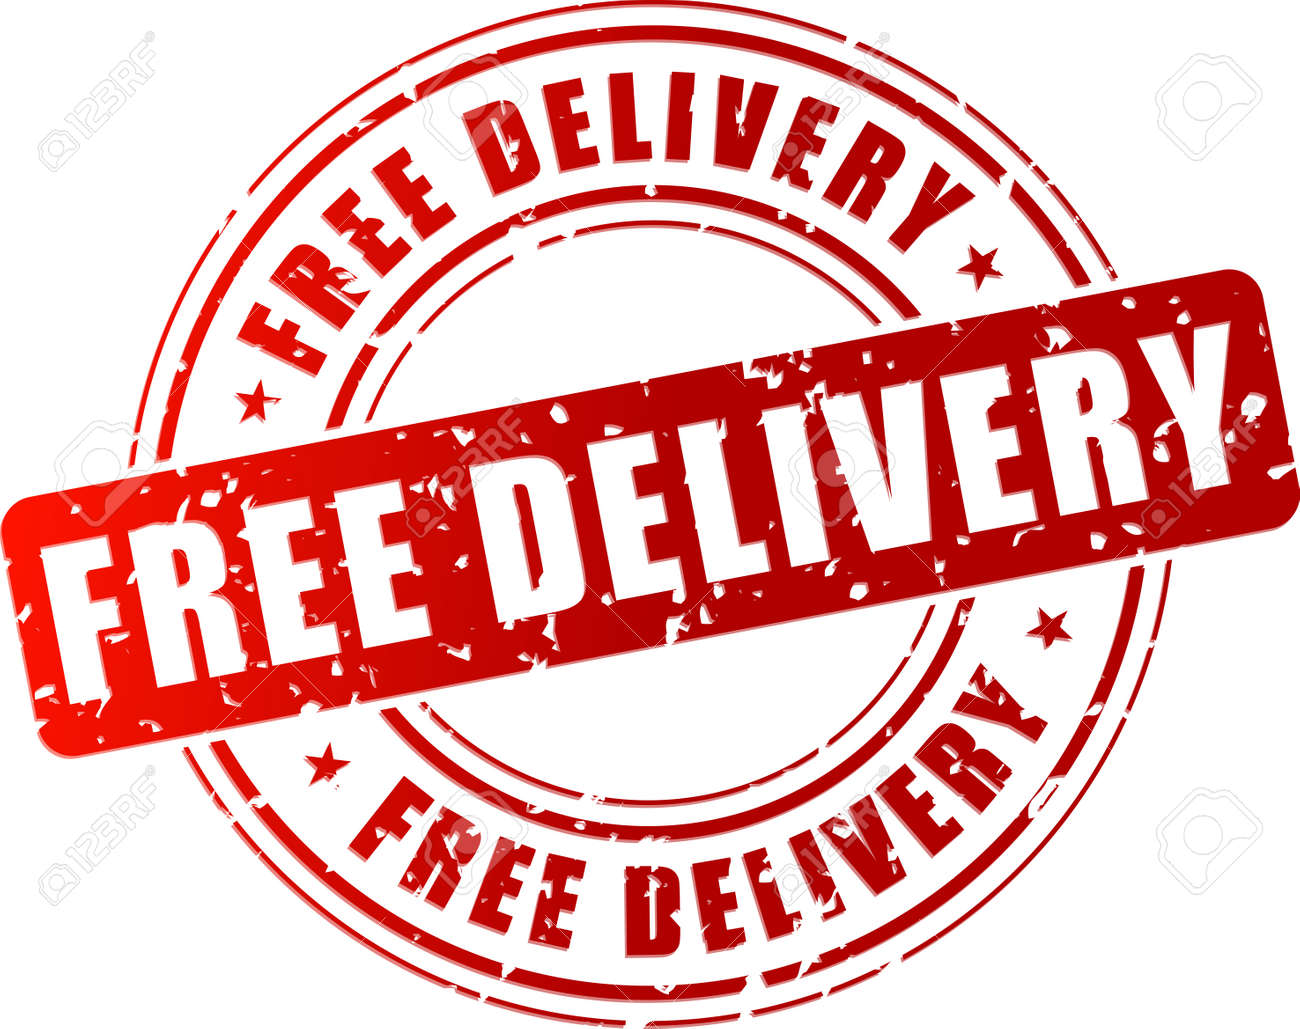 Vector - Vector illustration of free delivery stamp on white background 78b0a95cf22